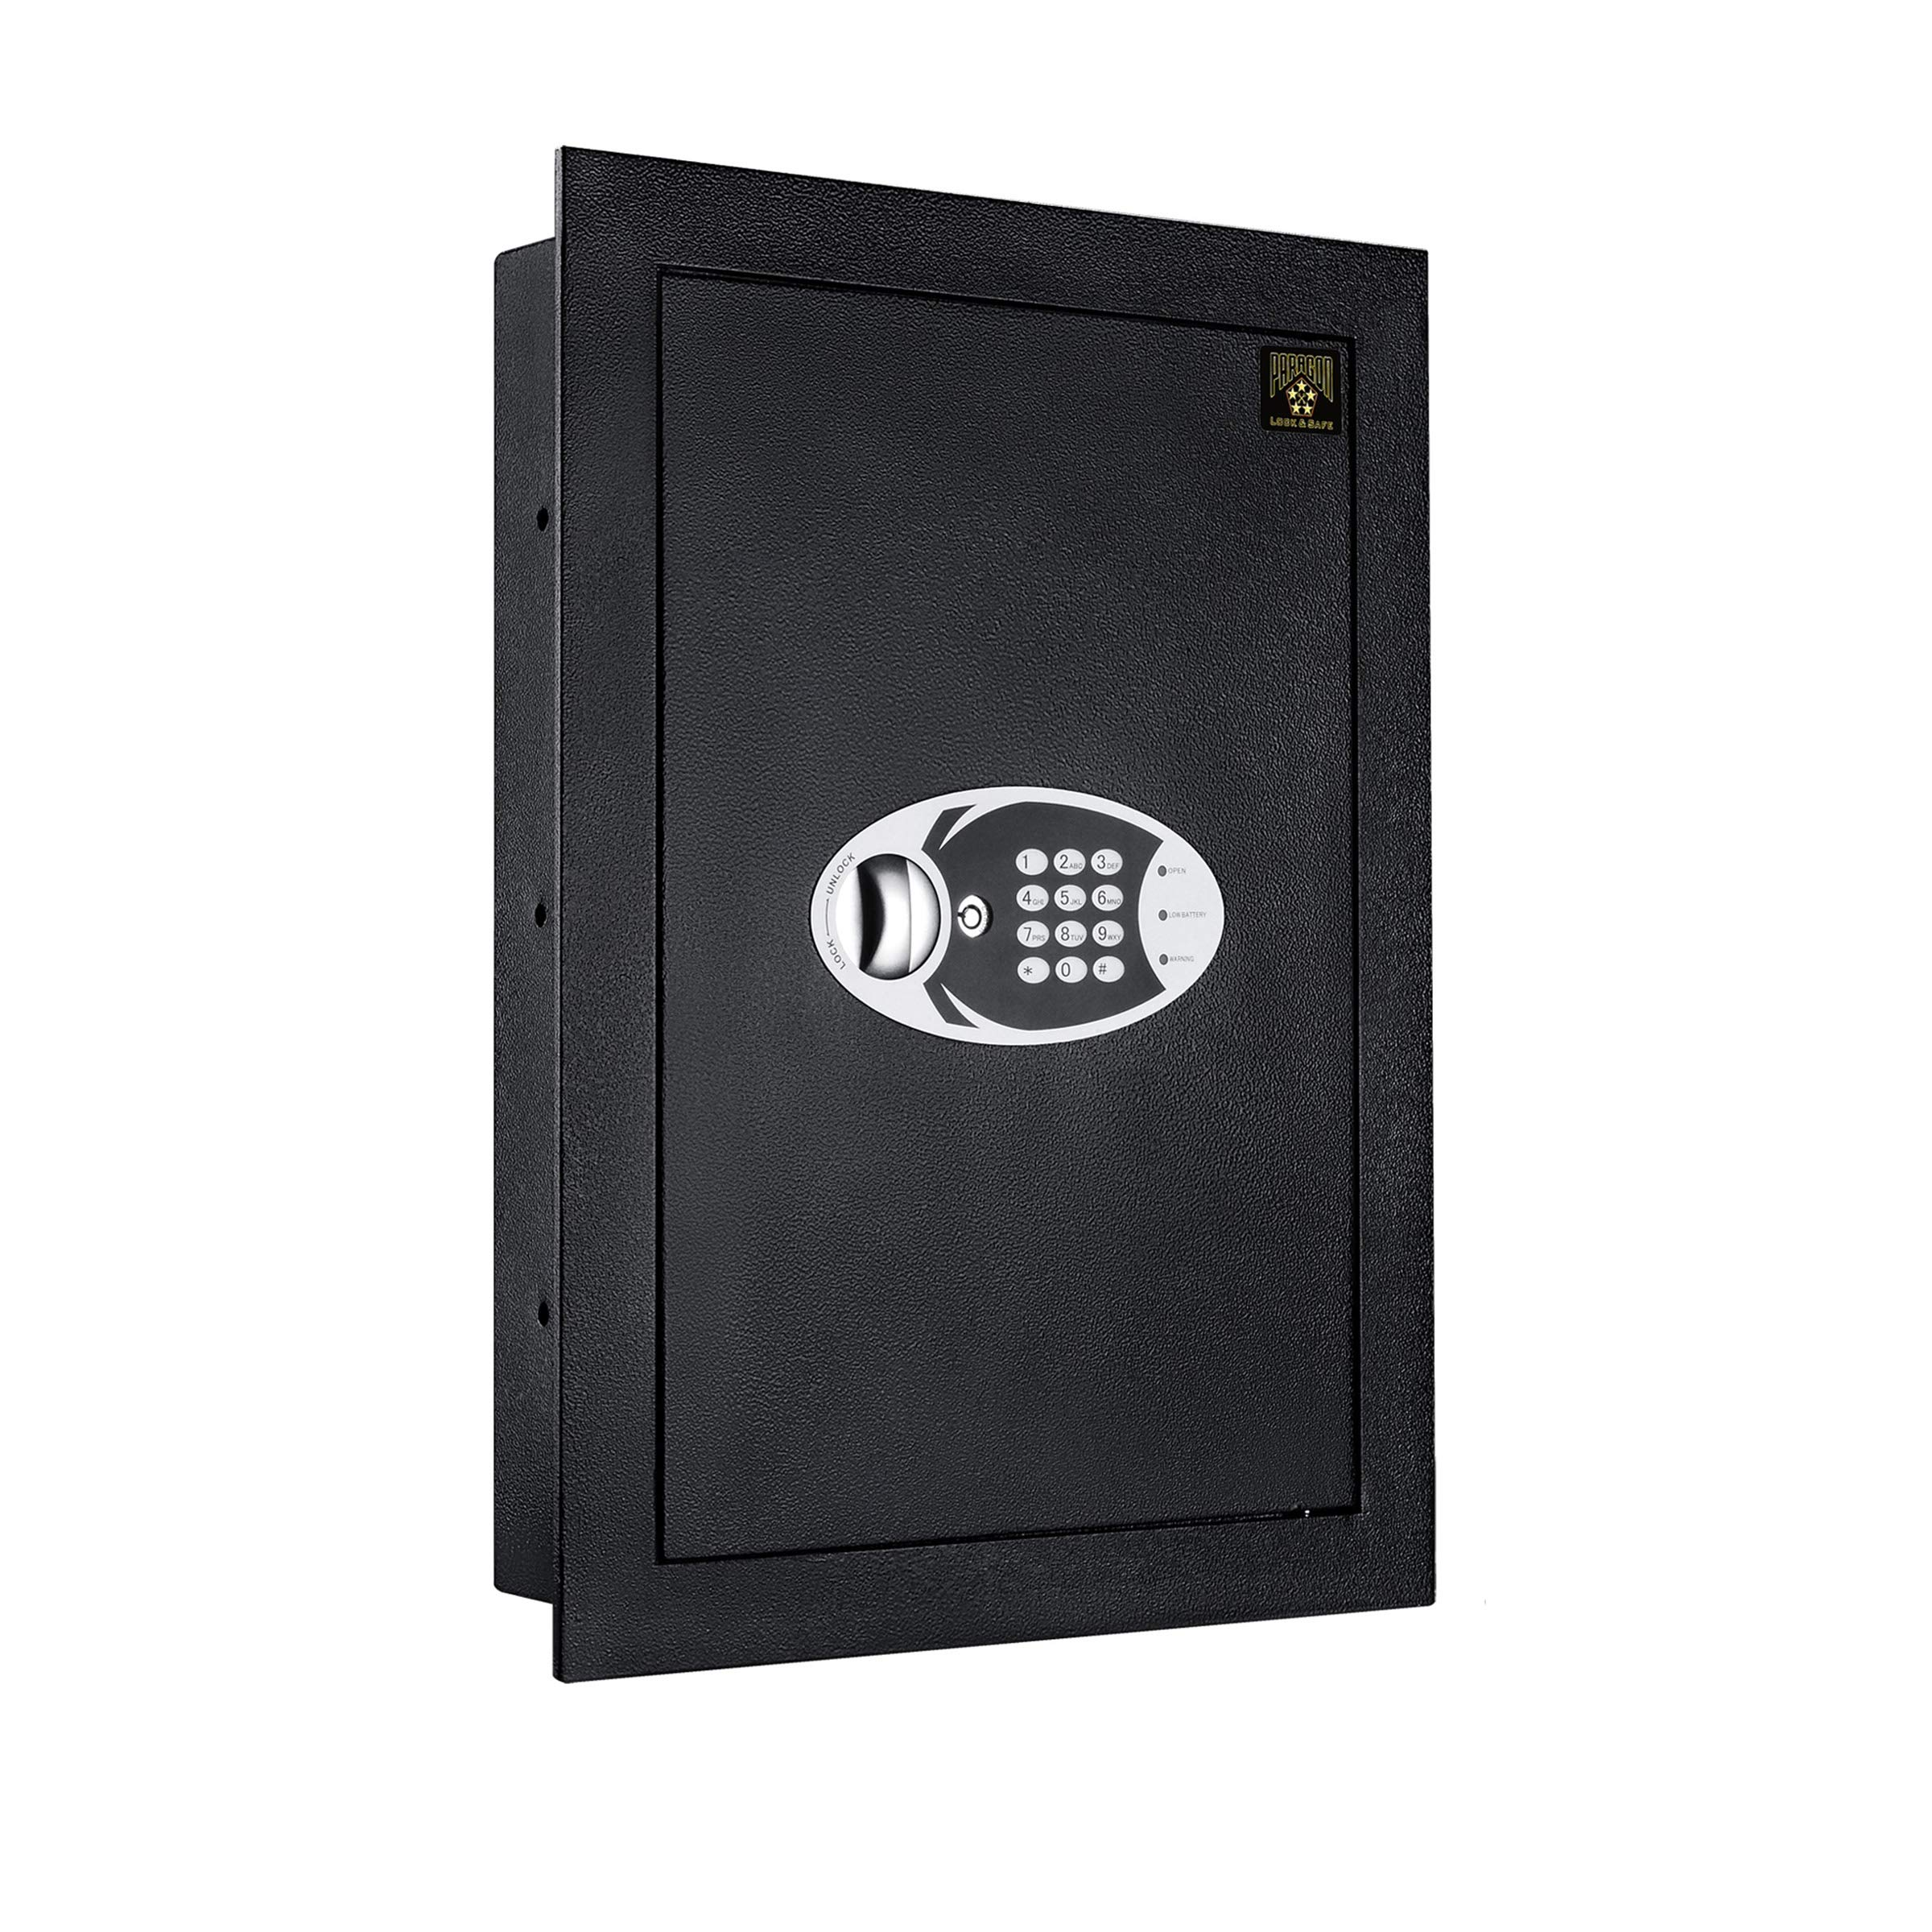 Paragon Digital Safe-Electronic Steel Wall Mount Safe with Keypad, 2 Manual Override Keys-Protect Money, Jewelry, Passports-For Home or Business